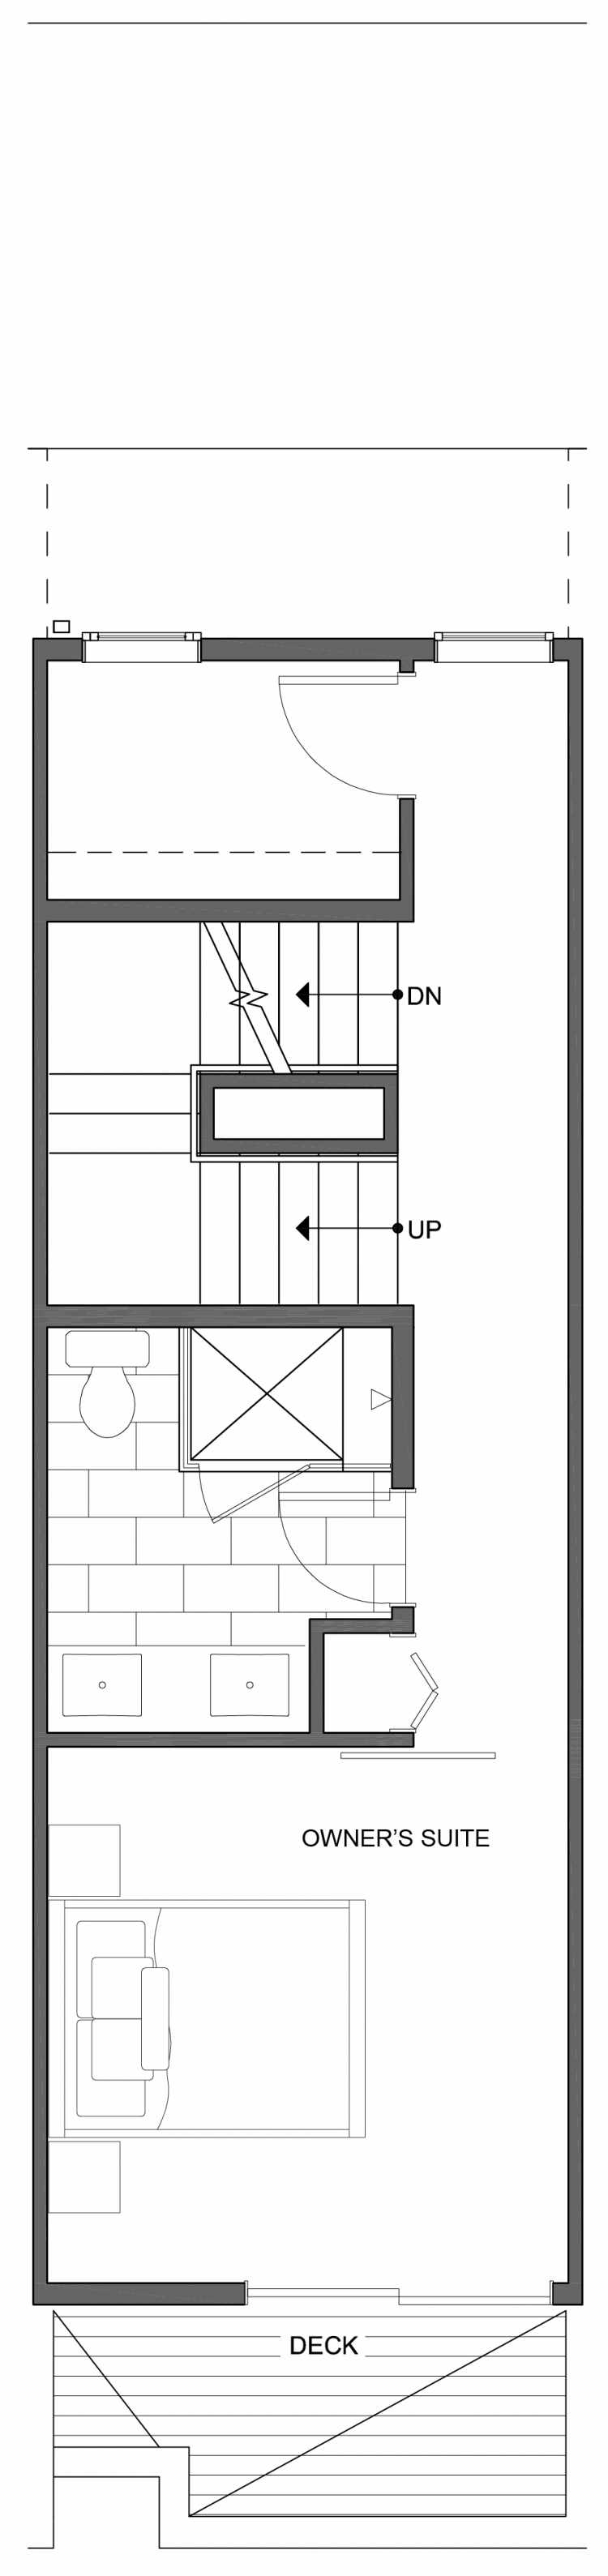 Fourth Floor Plan of 806F N 46th St, One of the Nino 15 East Townhomes by Isola Homes